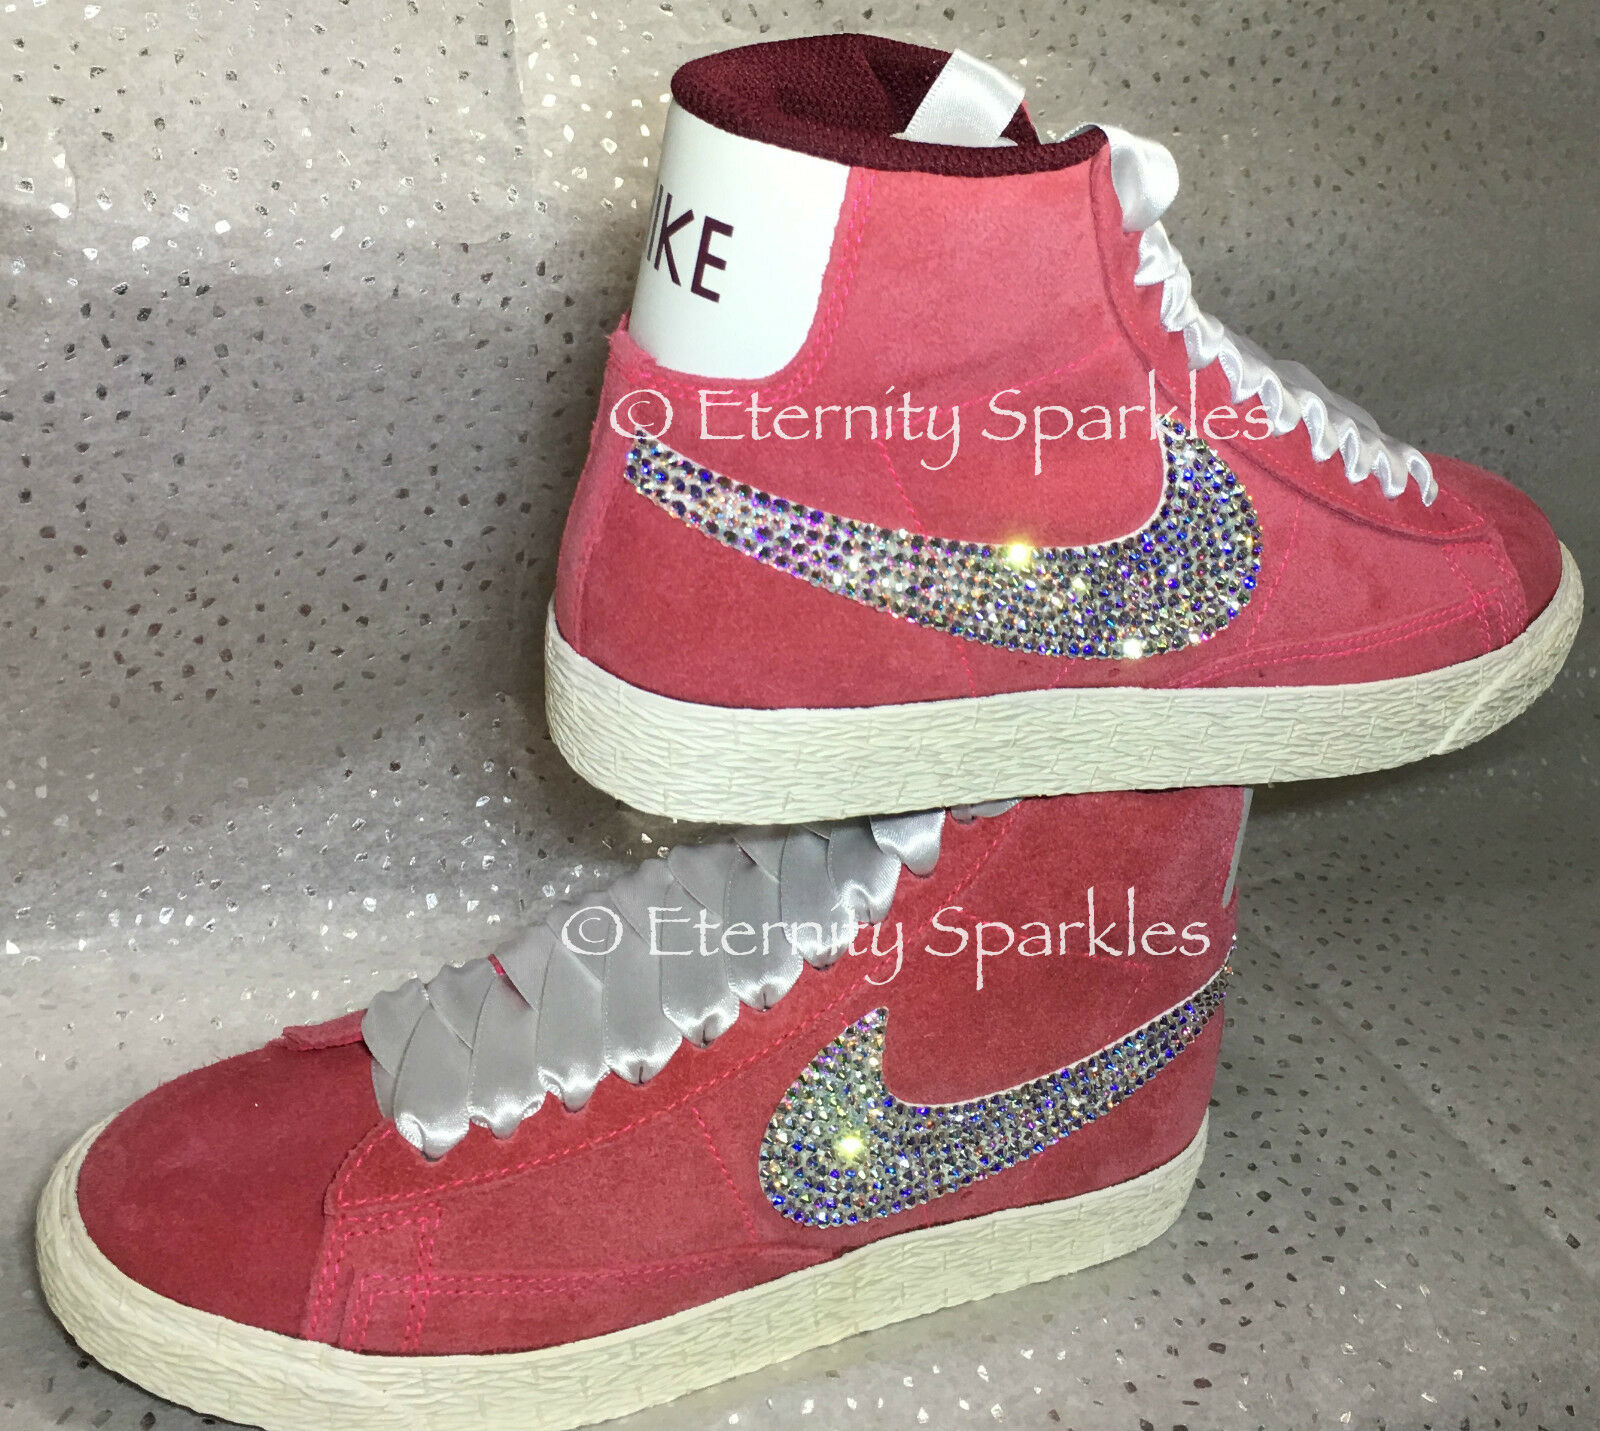 Customised Rose Pink Crystal SWAROVSKI Sparkle Nike Blazers Made With SWAROVSKI Crystal ELEMENTS e1c146